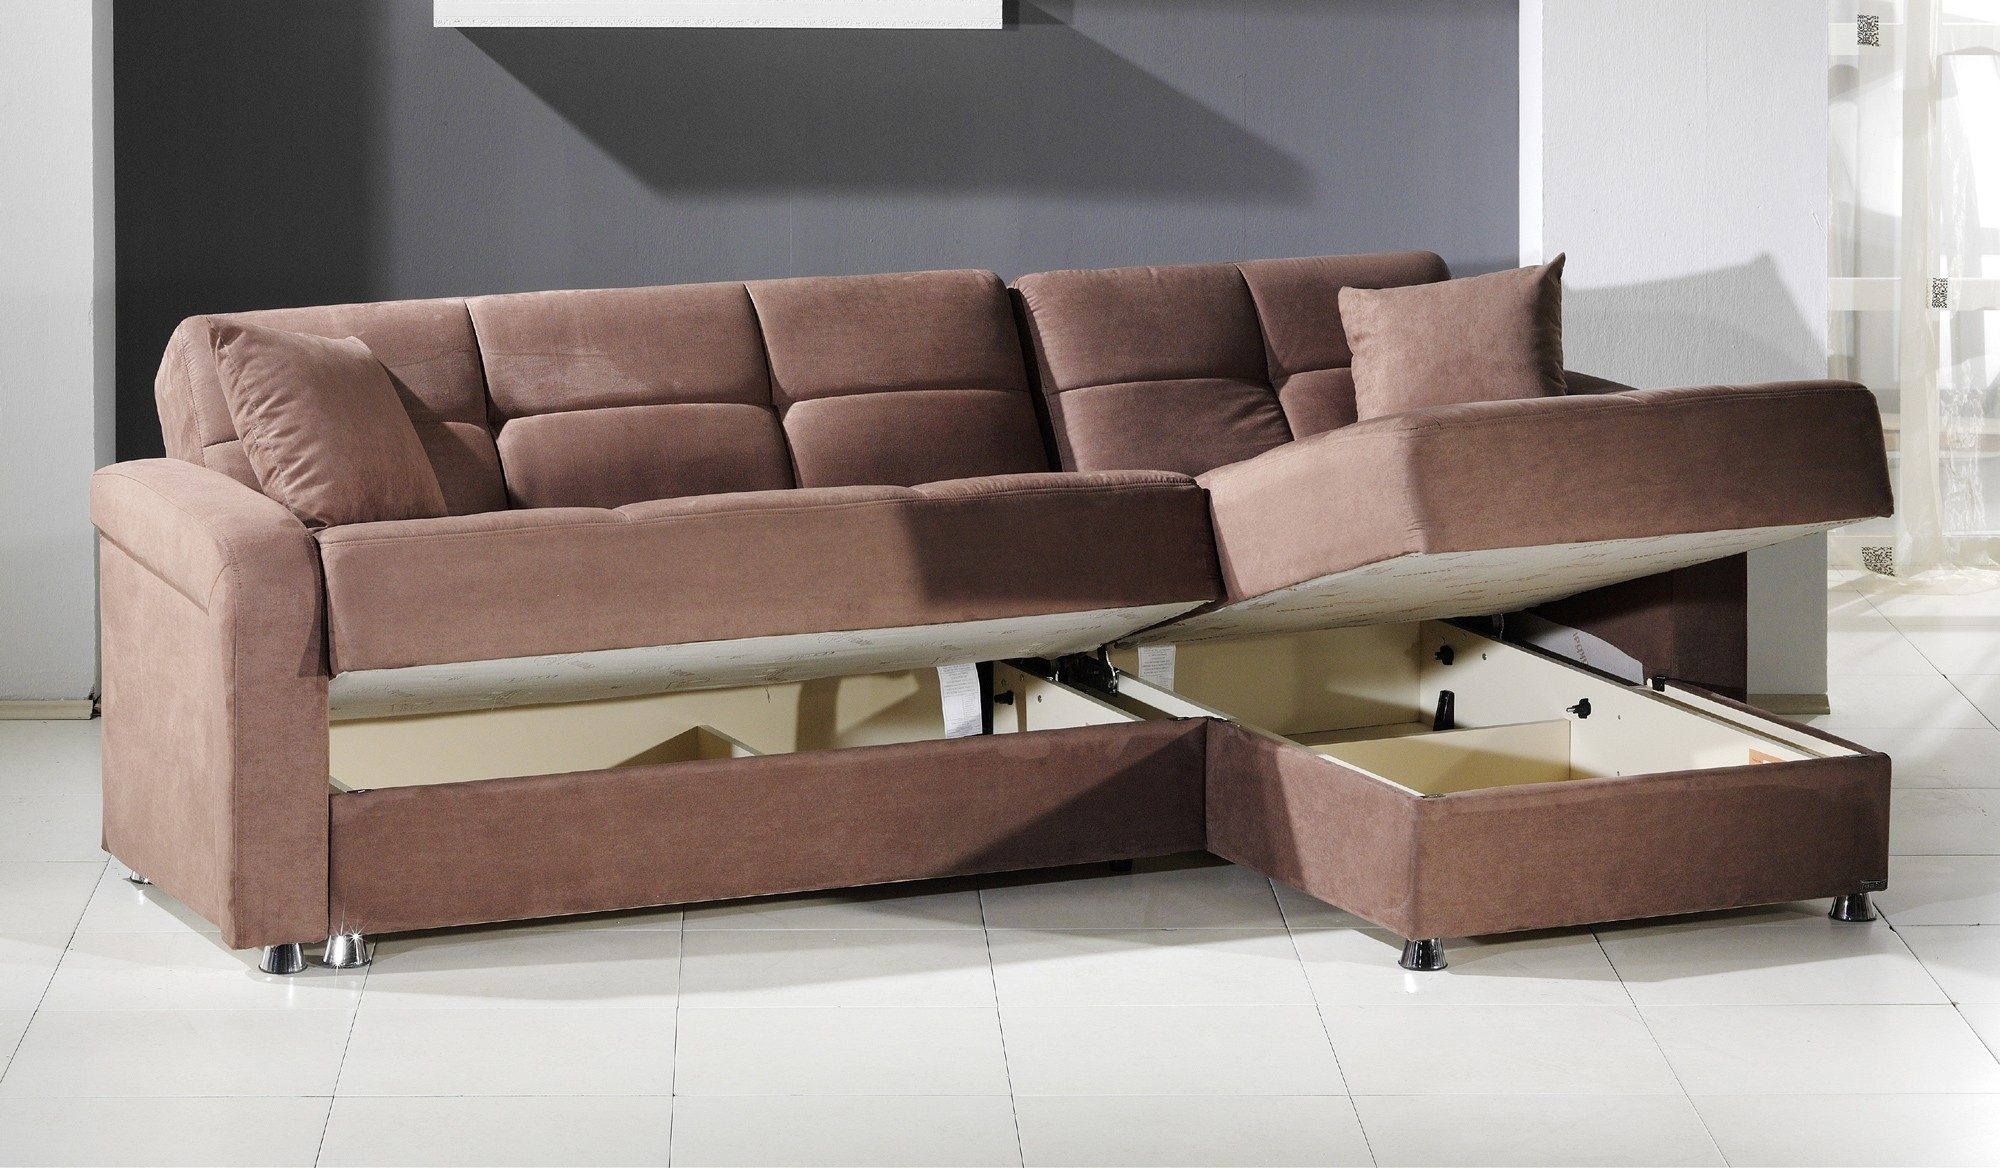 Simple Sectional Sofas With Storage 82 About Remodel Leather Sofa With Regard To Leather Sofas With Storage (Image 7 of 10)